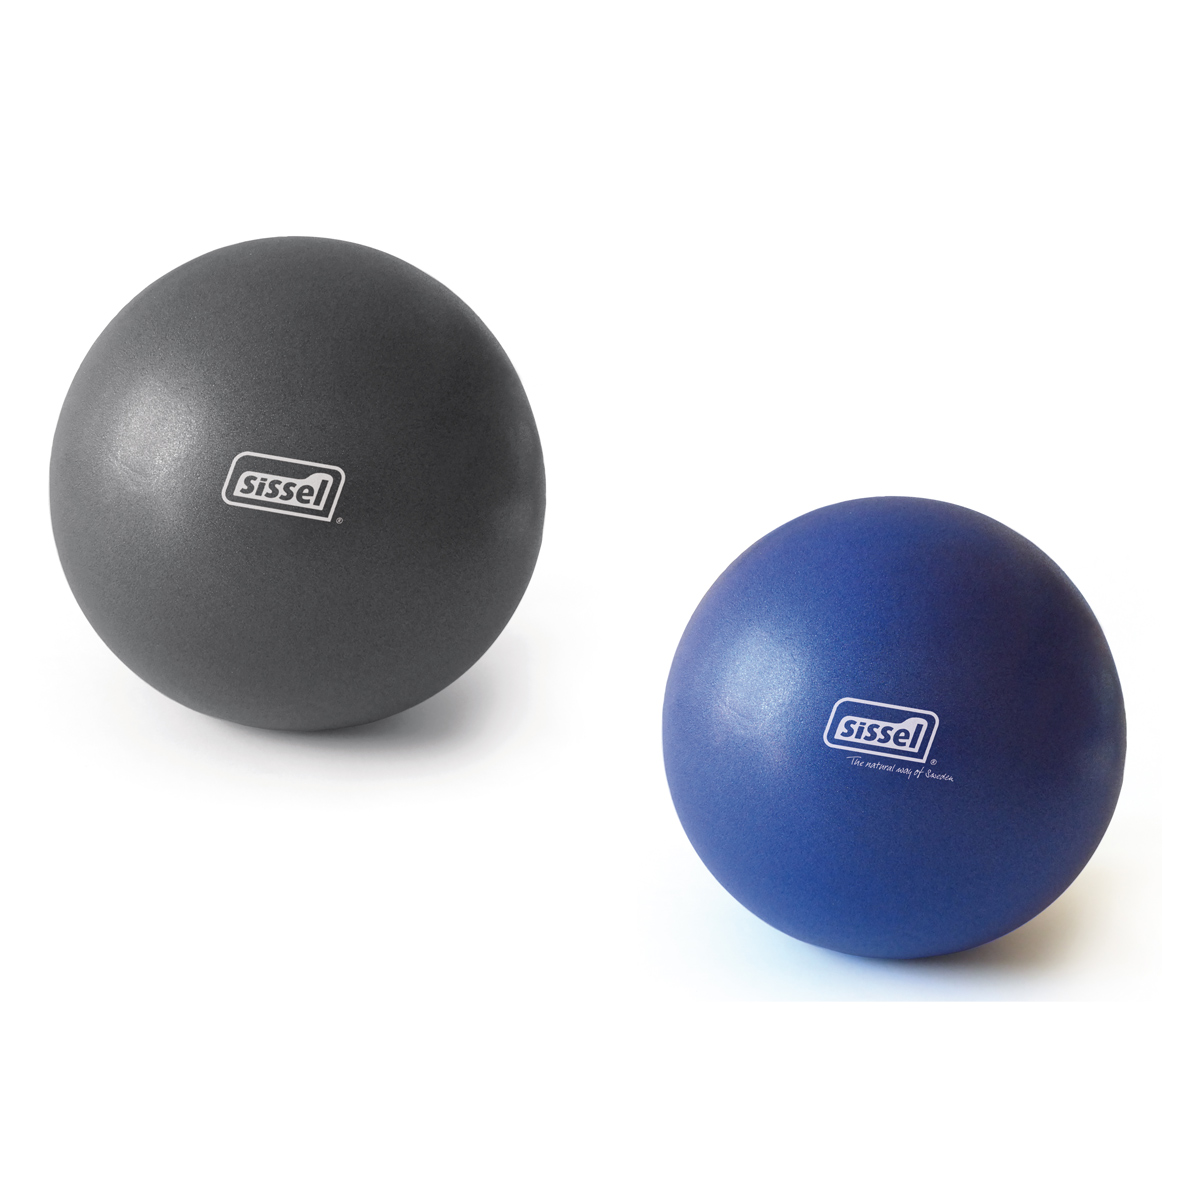 Palla soffice Pilates Soft Ball SISSEL®